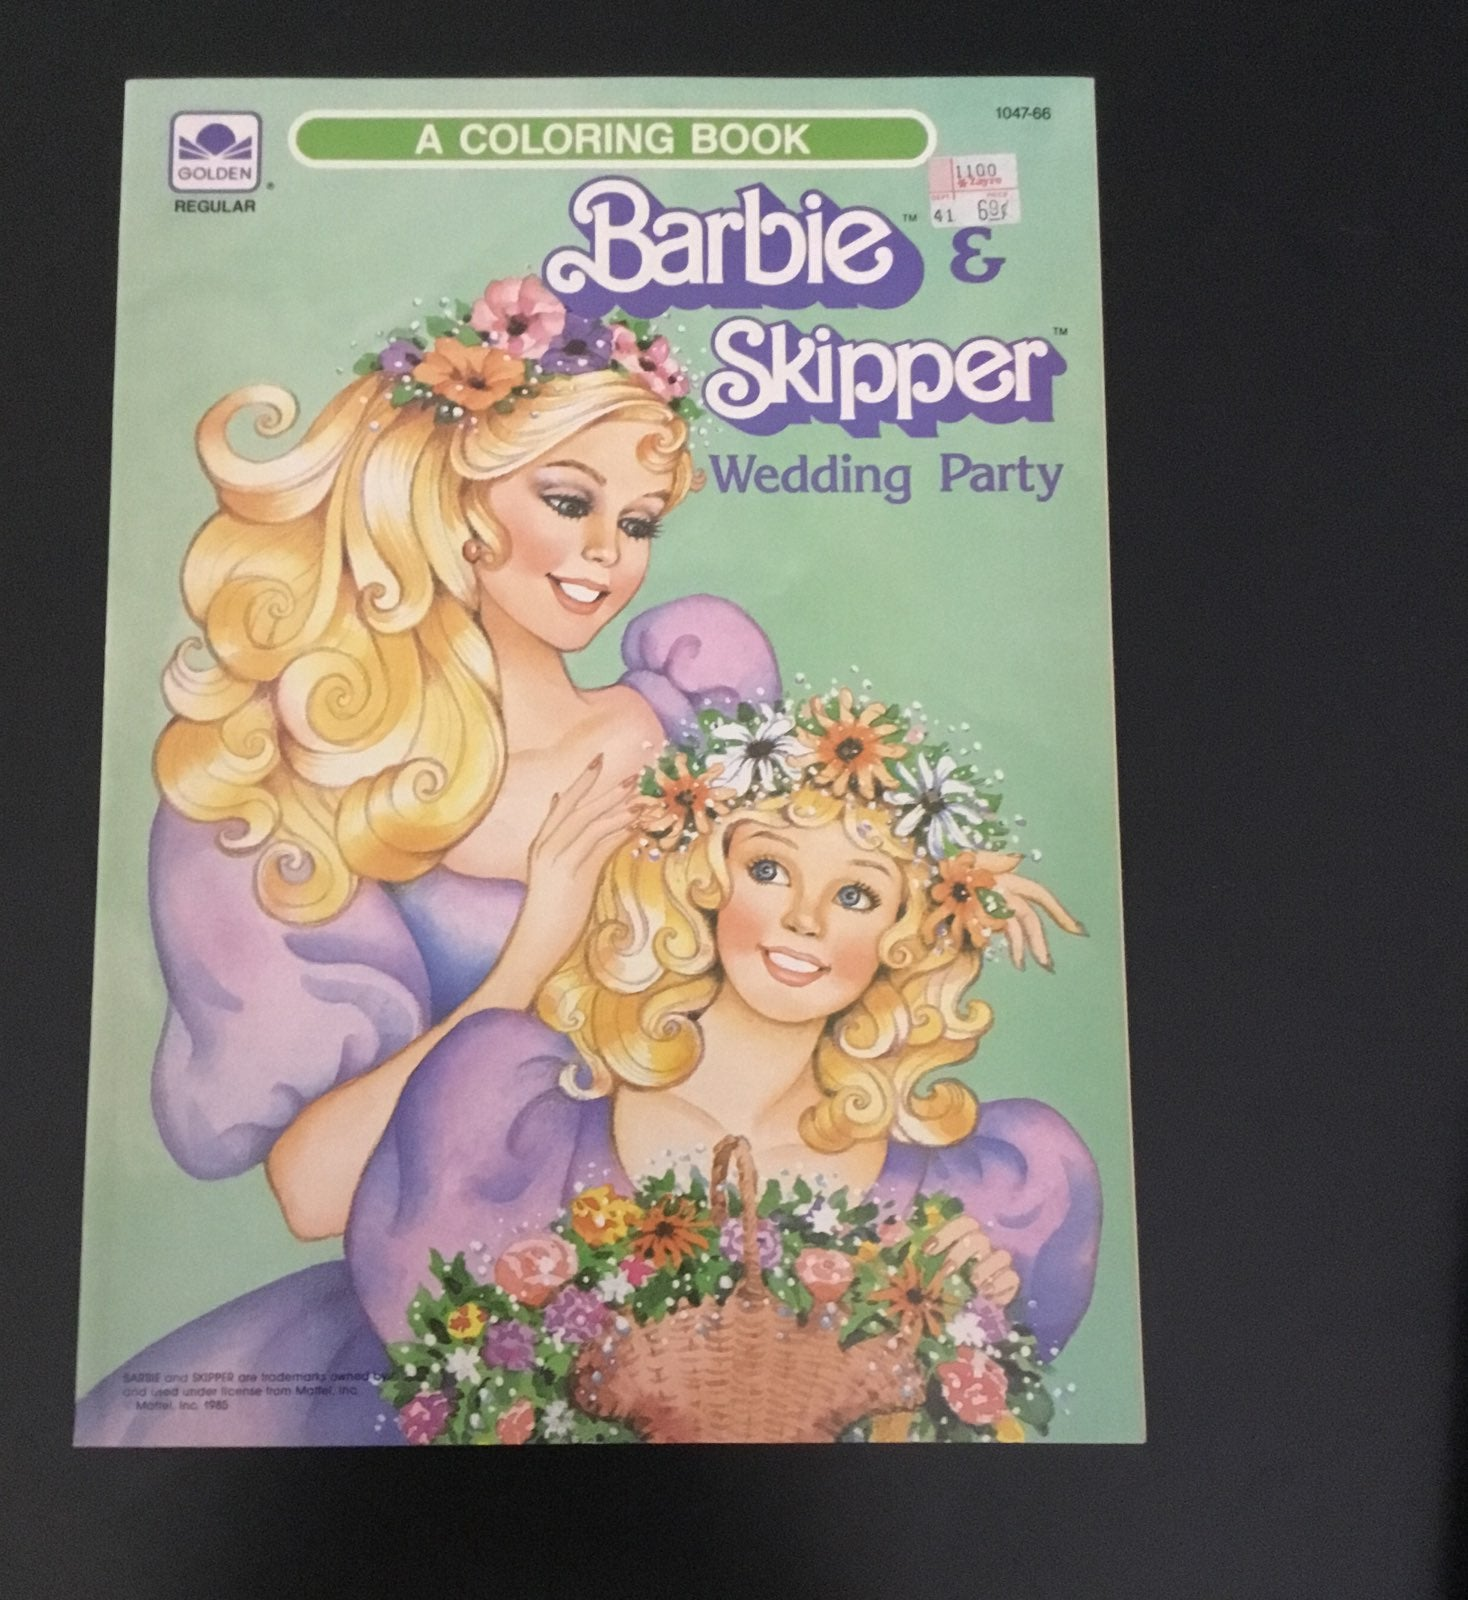 Barbie & Skipper Wedding Party coloring